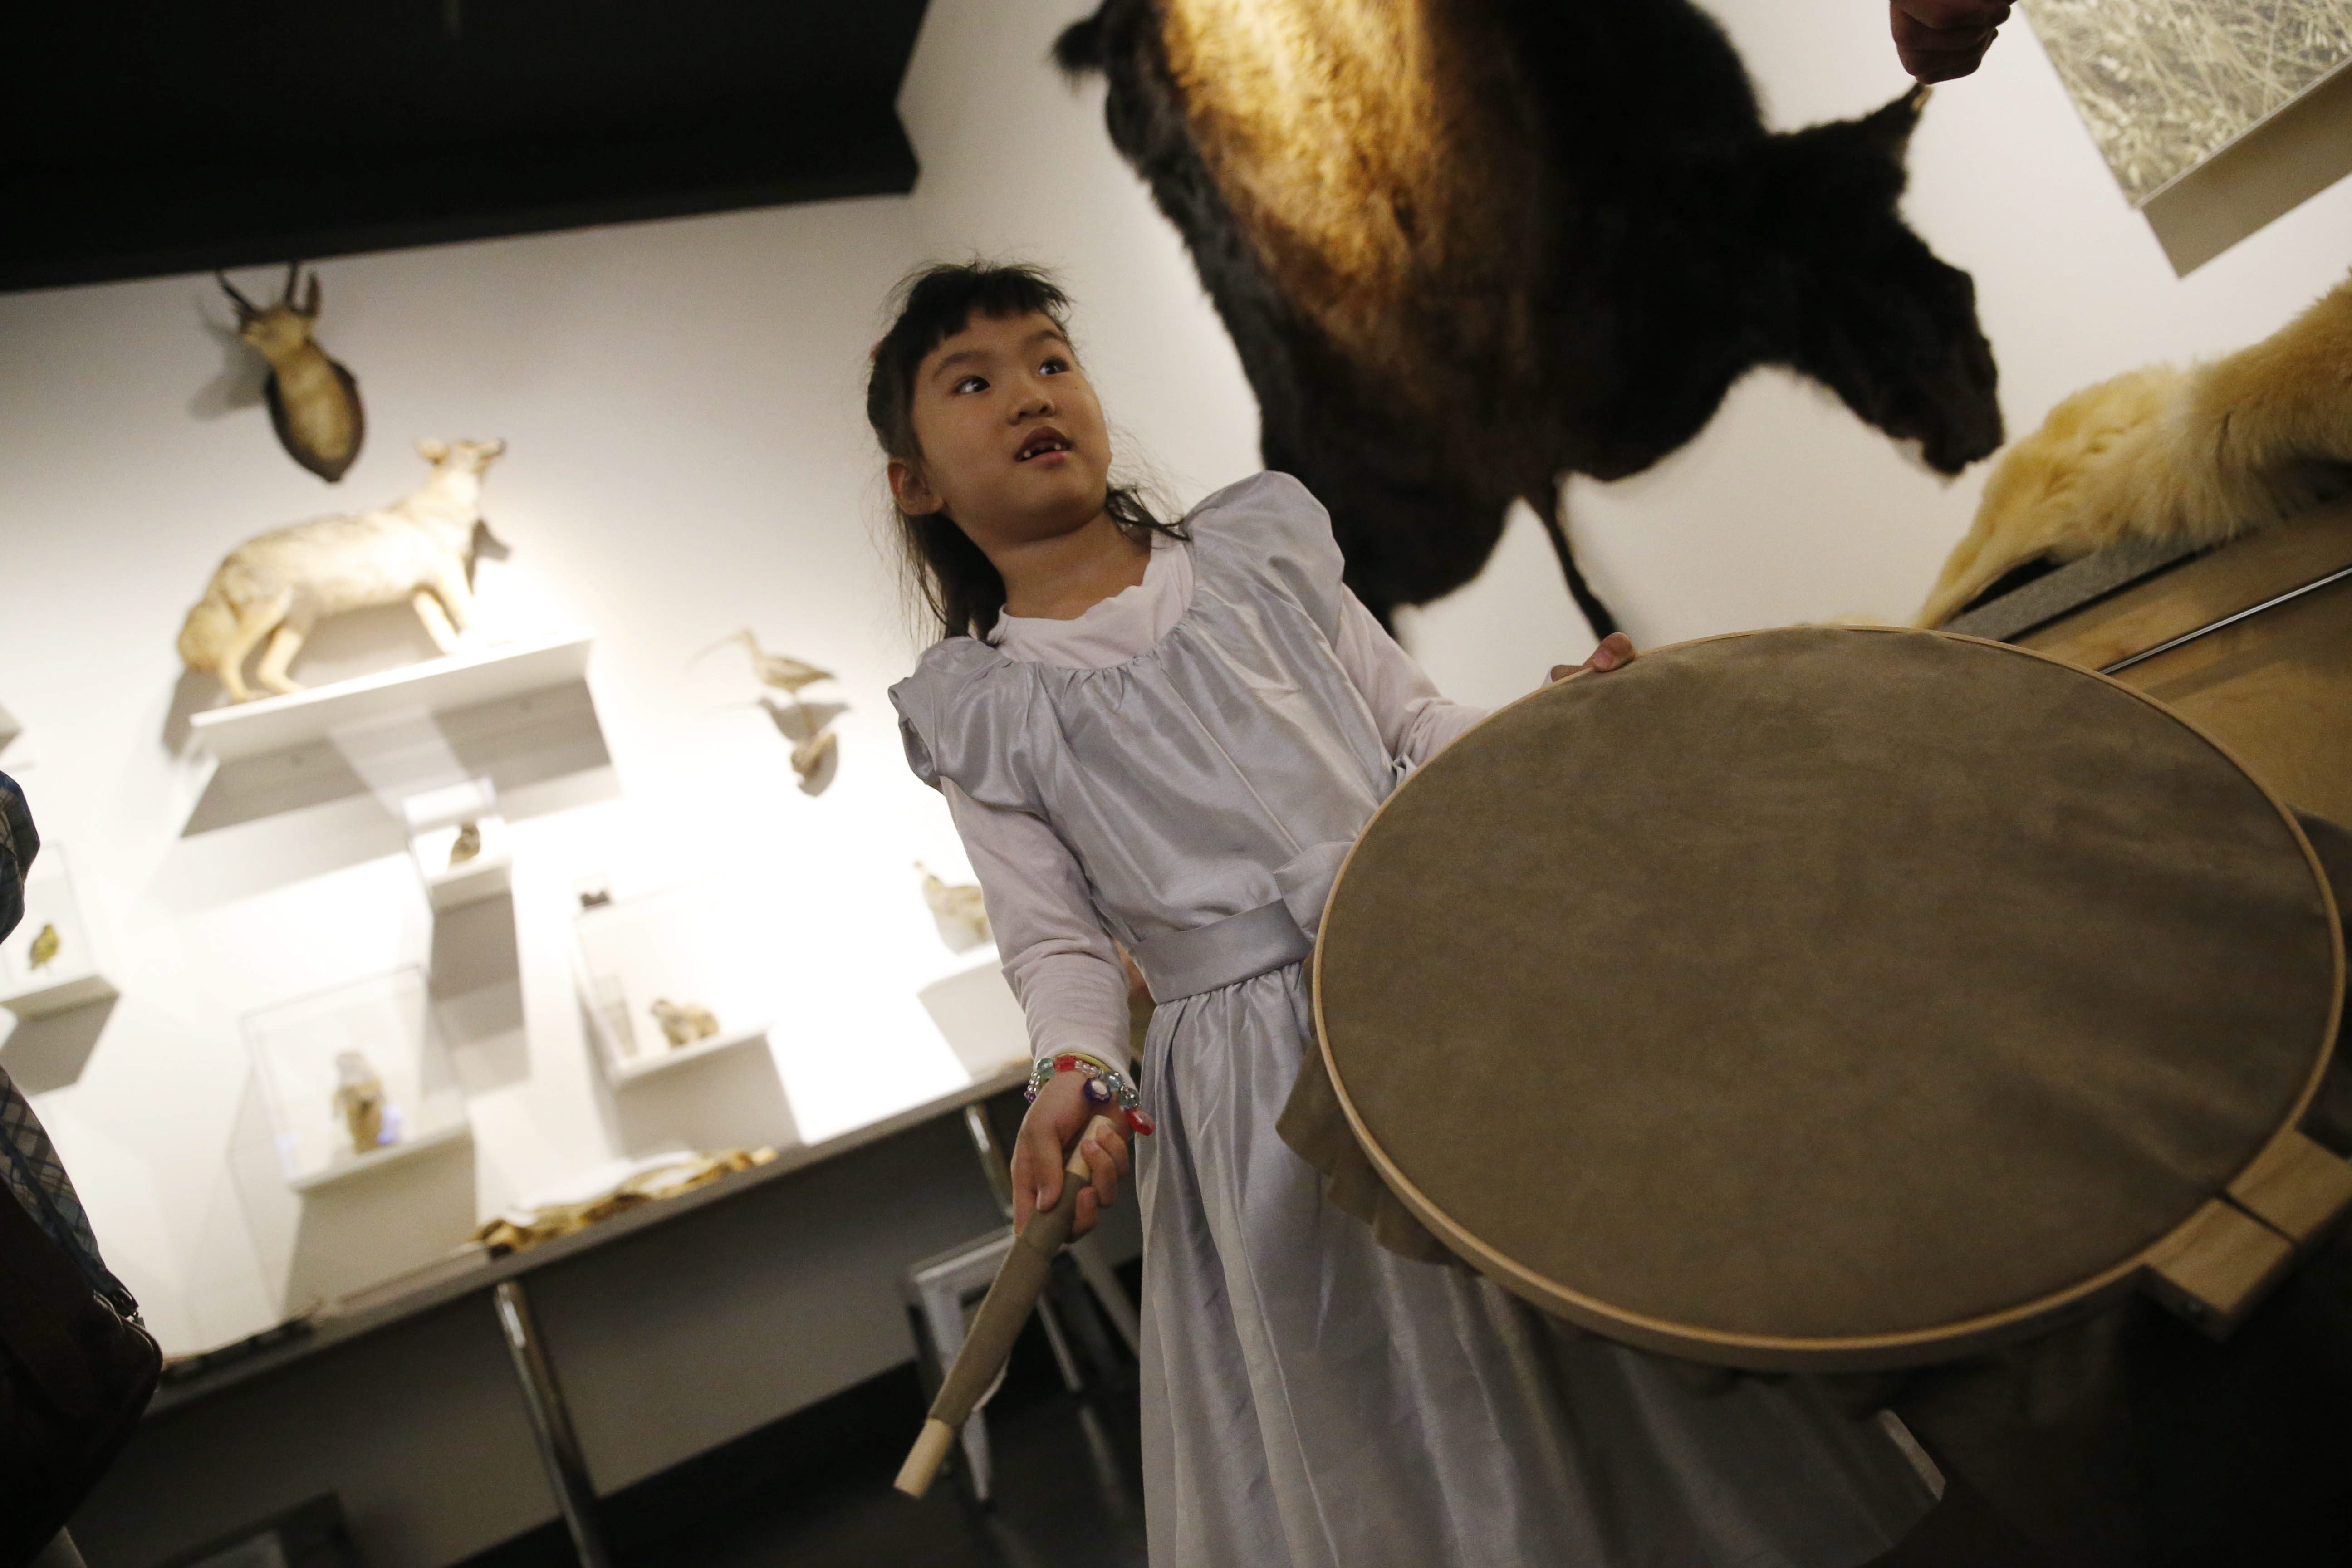 Haojia Weng, 6, of Buffalo tries out an Inuit drum Saturday during the Polar Activities educational programming in the new biodiversity exhibit at the Buffalo Museum of Science.